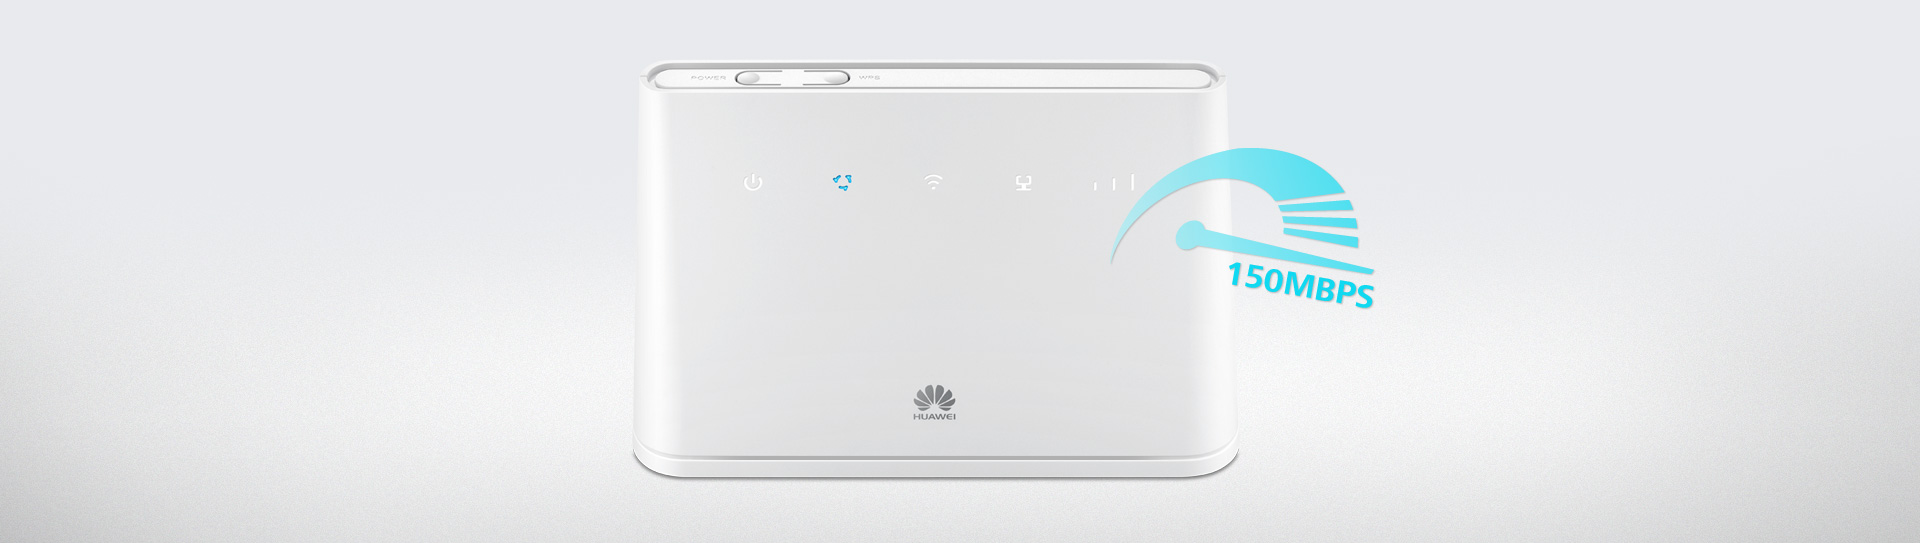 LTE CPE B310 | 4G LTE Routers | HUAWEI United Kingdom